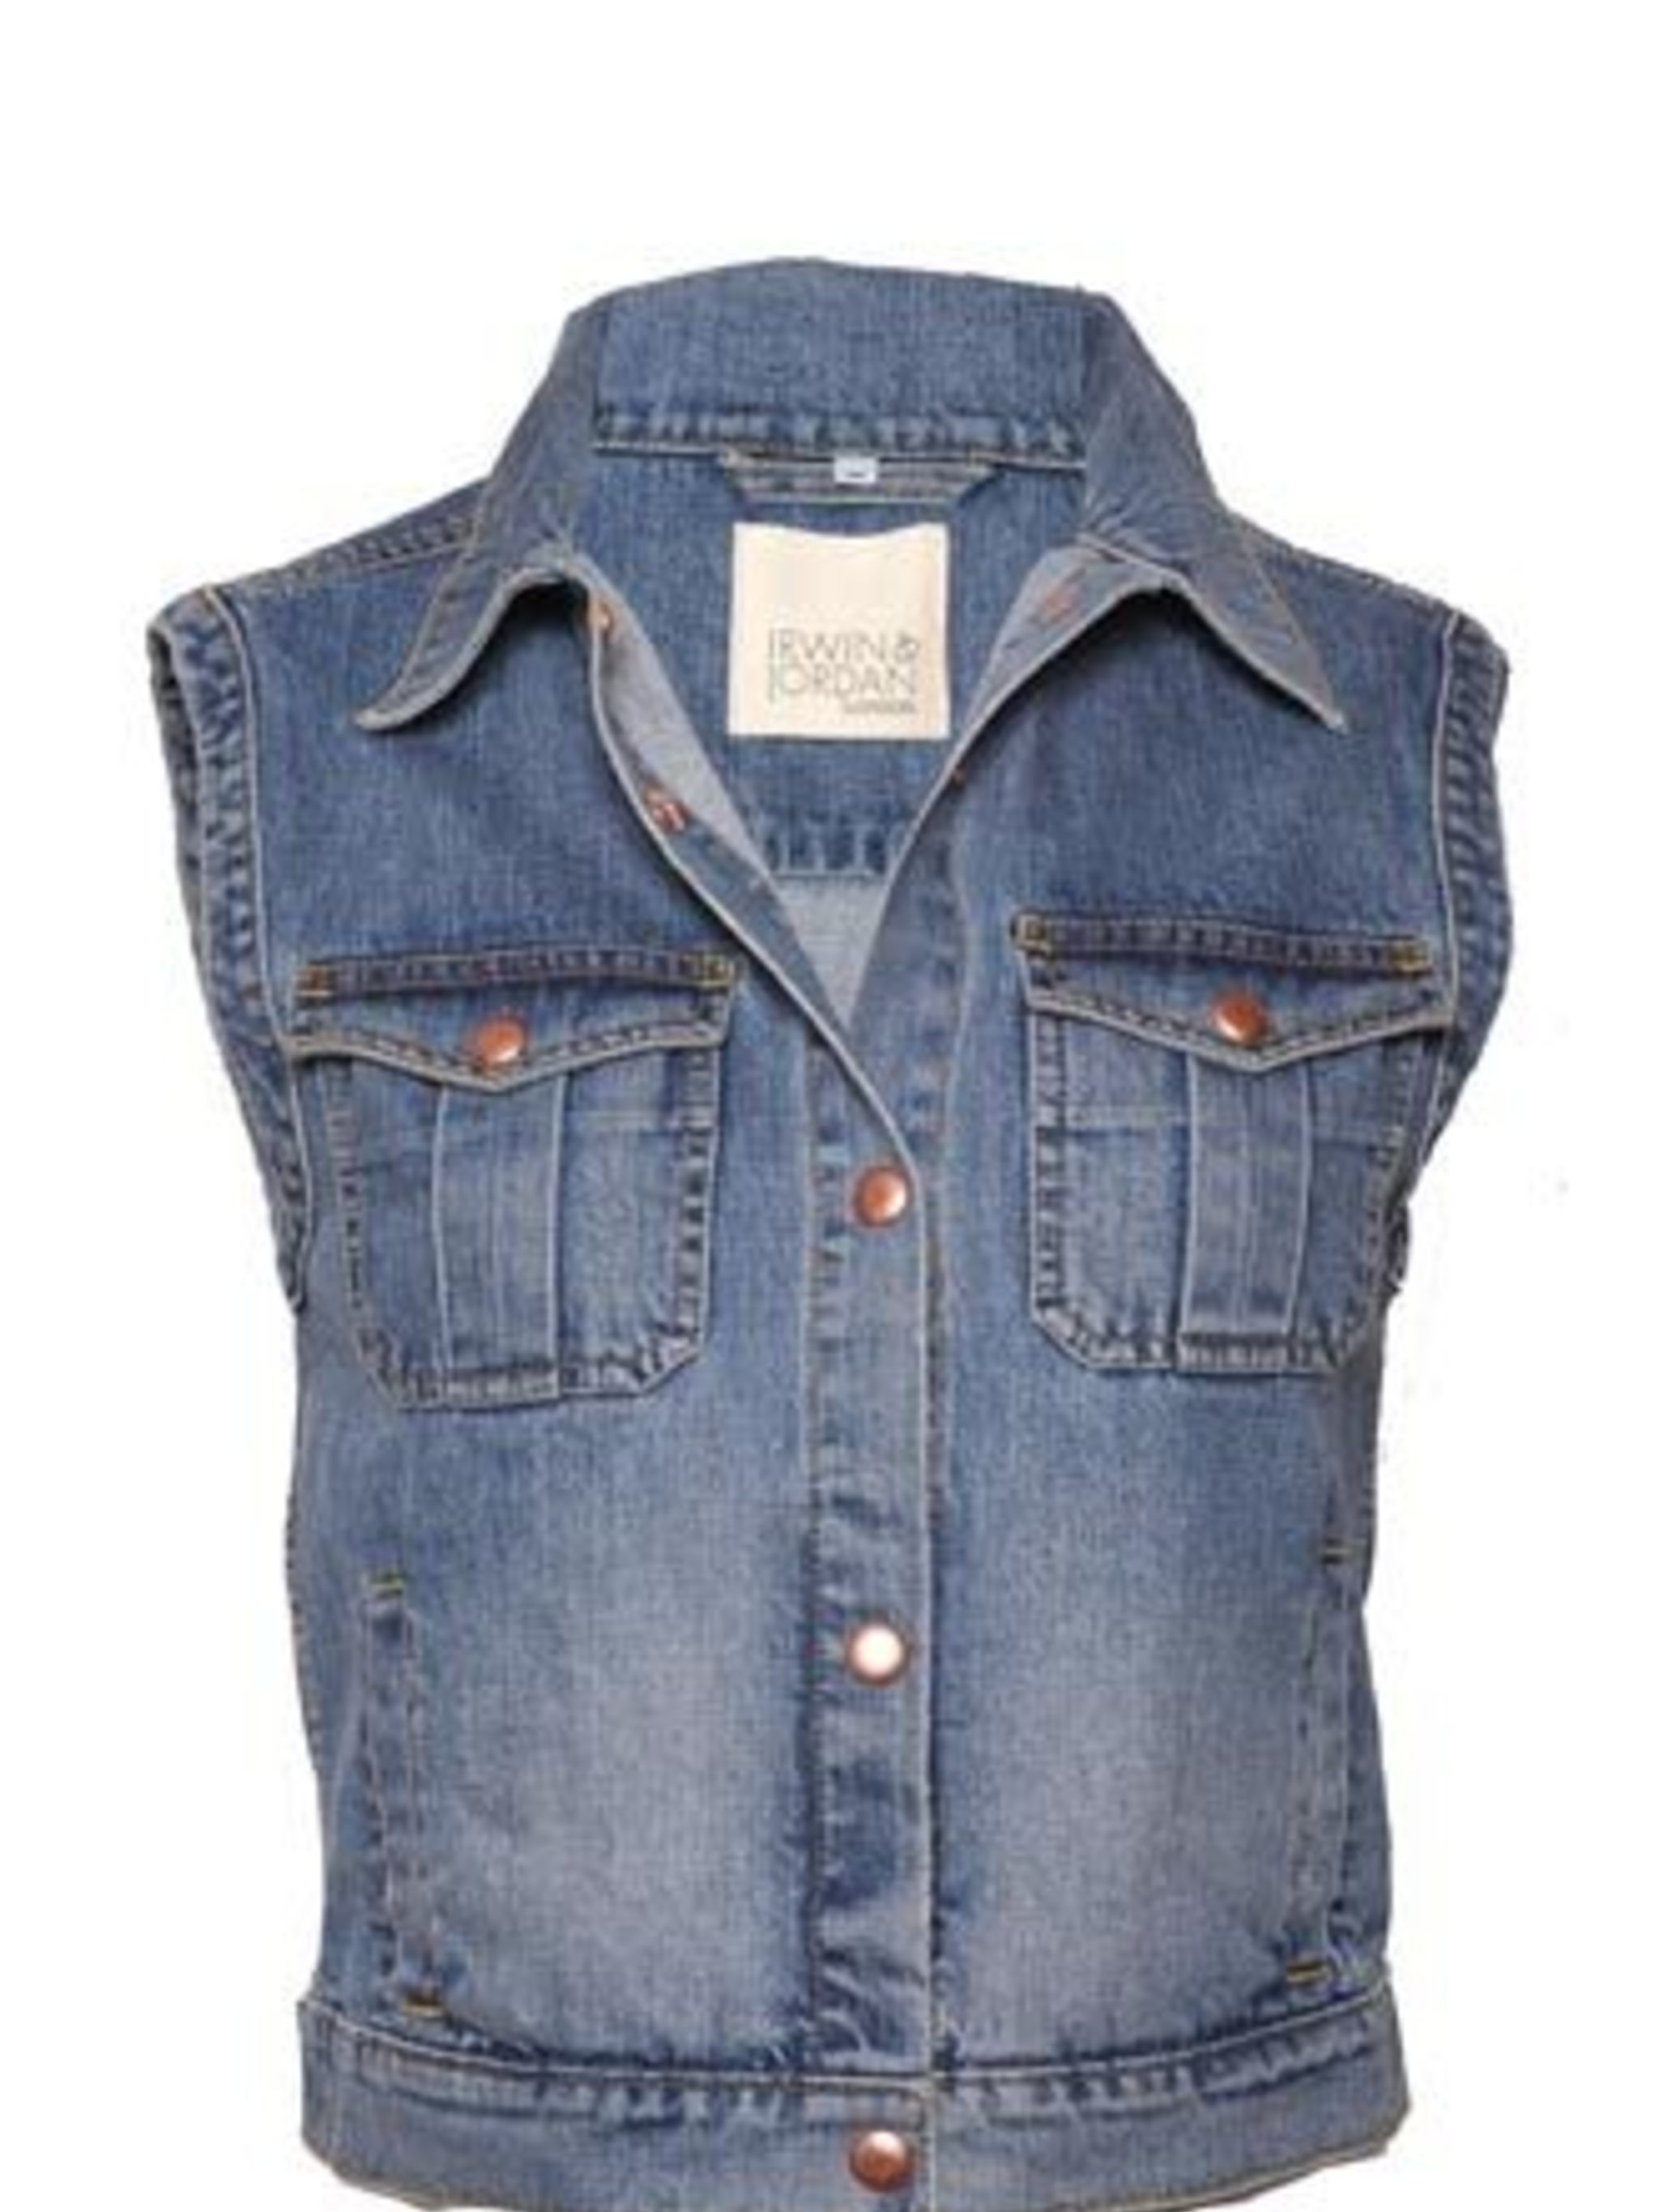 <p>A denim waistcoat is one of the most versatile pieces of clothing you will ever own. Some of its possibilities: layer it under smart jackets or over pretty dresses to give off a more casual vibe; team with jeans to nail the double denim trend; or wear